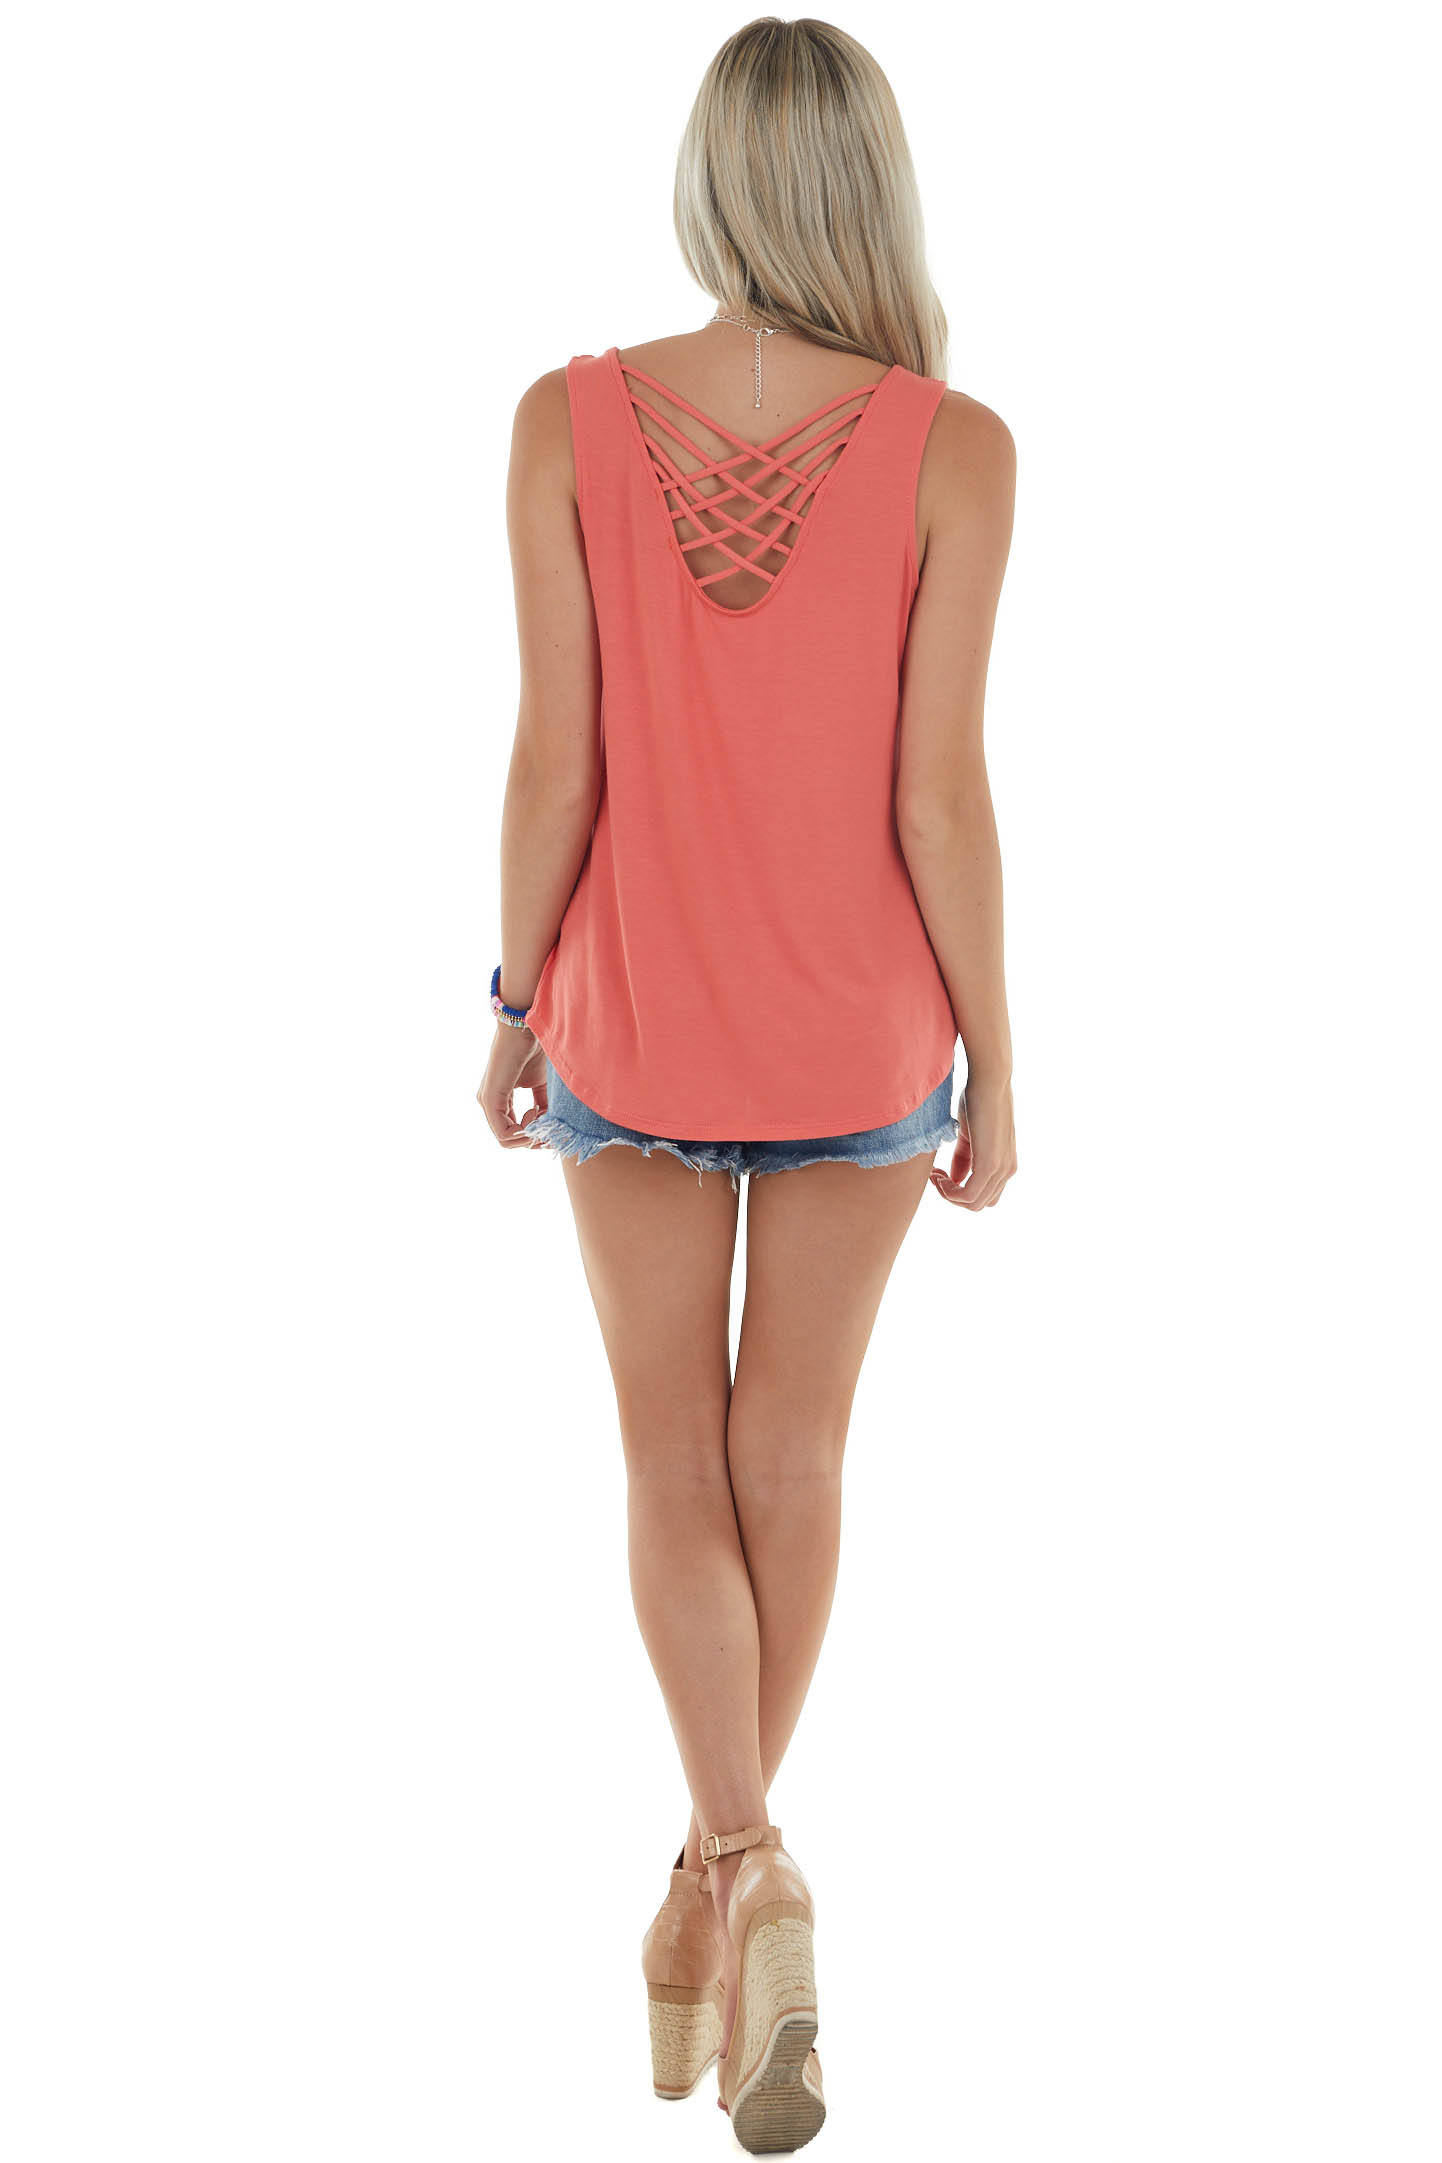 Coral Strappy Criss Cross Back Knit Tank Top